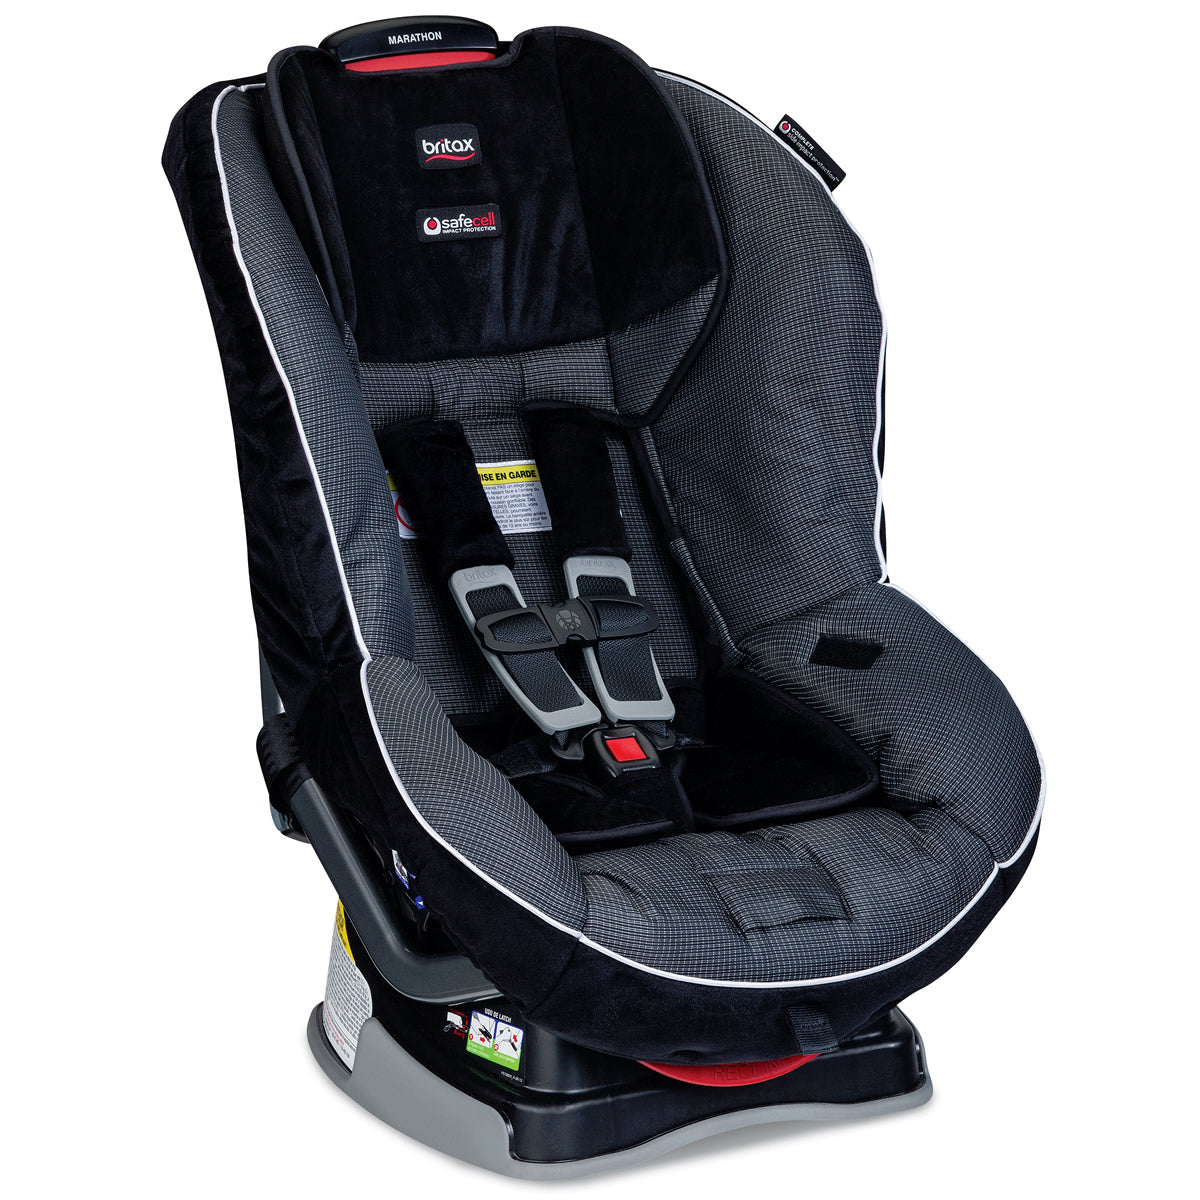 Car Seat, Buy the Best Car Seat for Your Baby